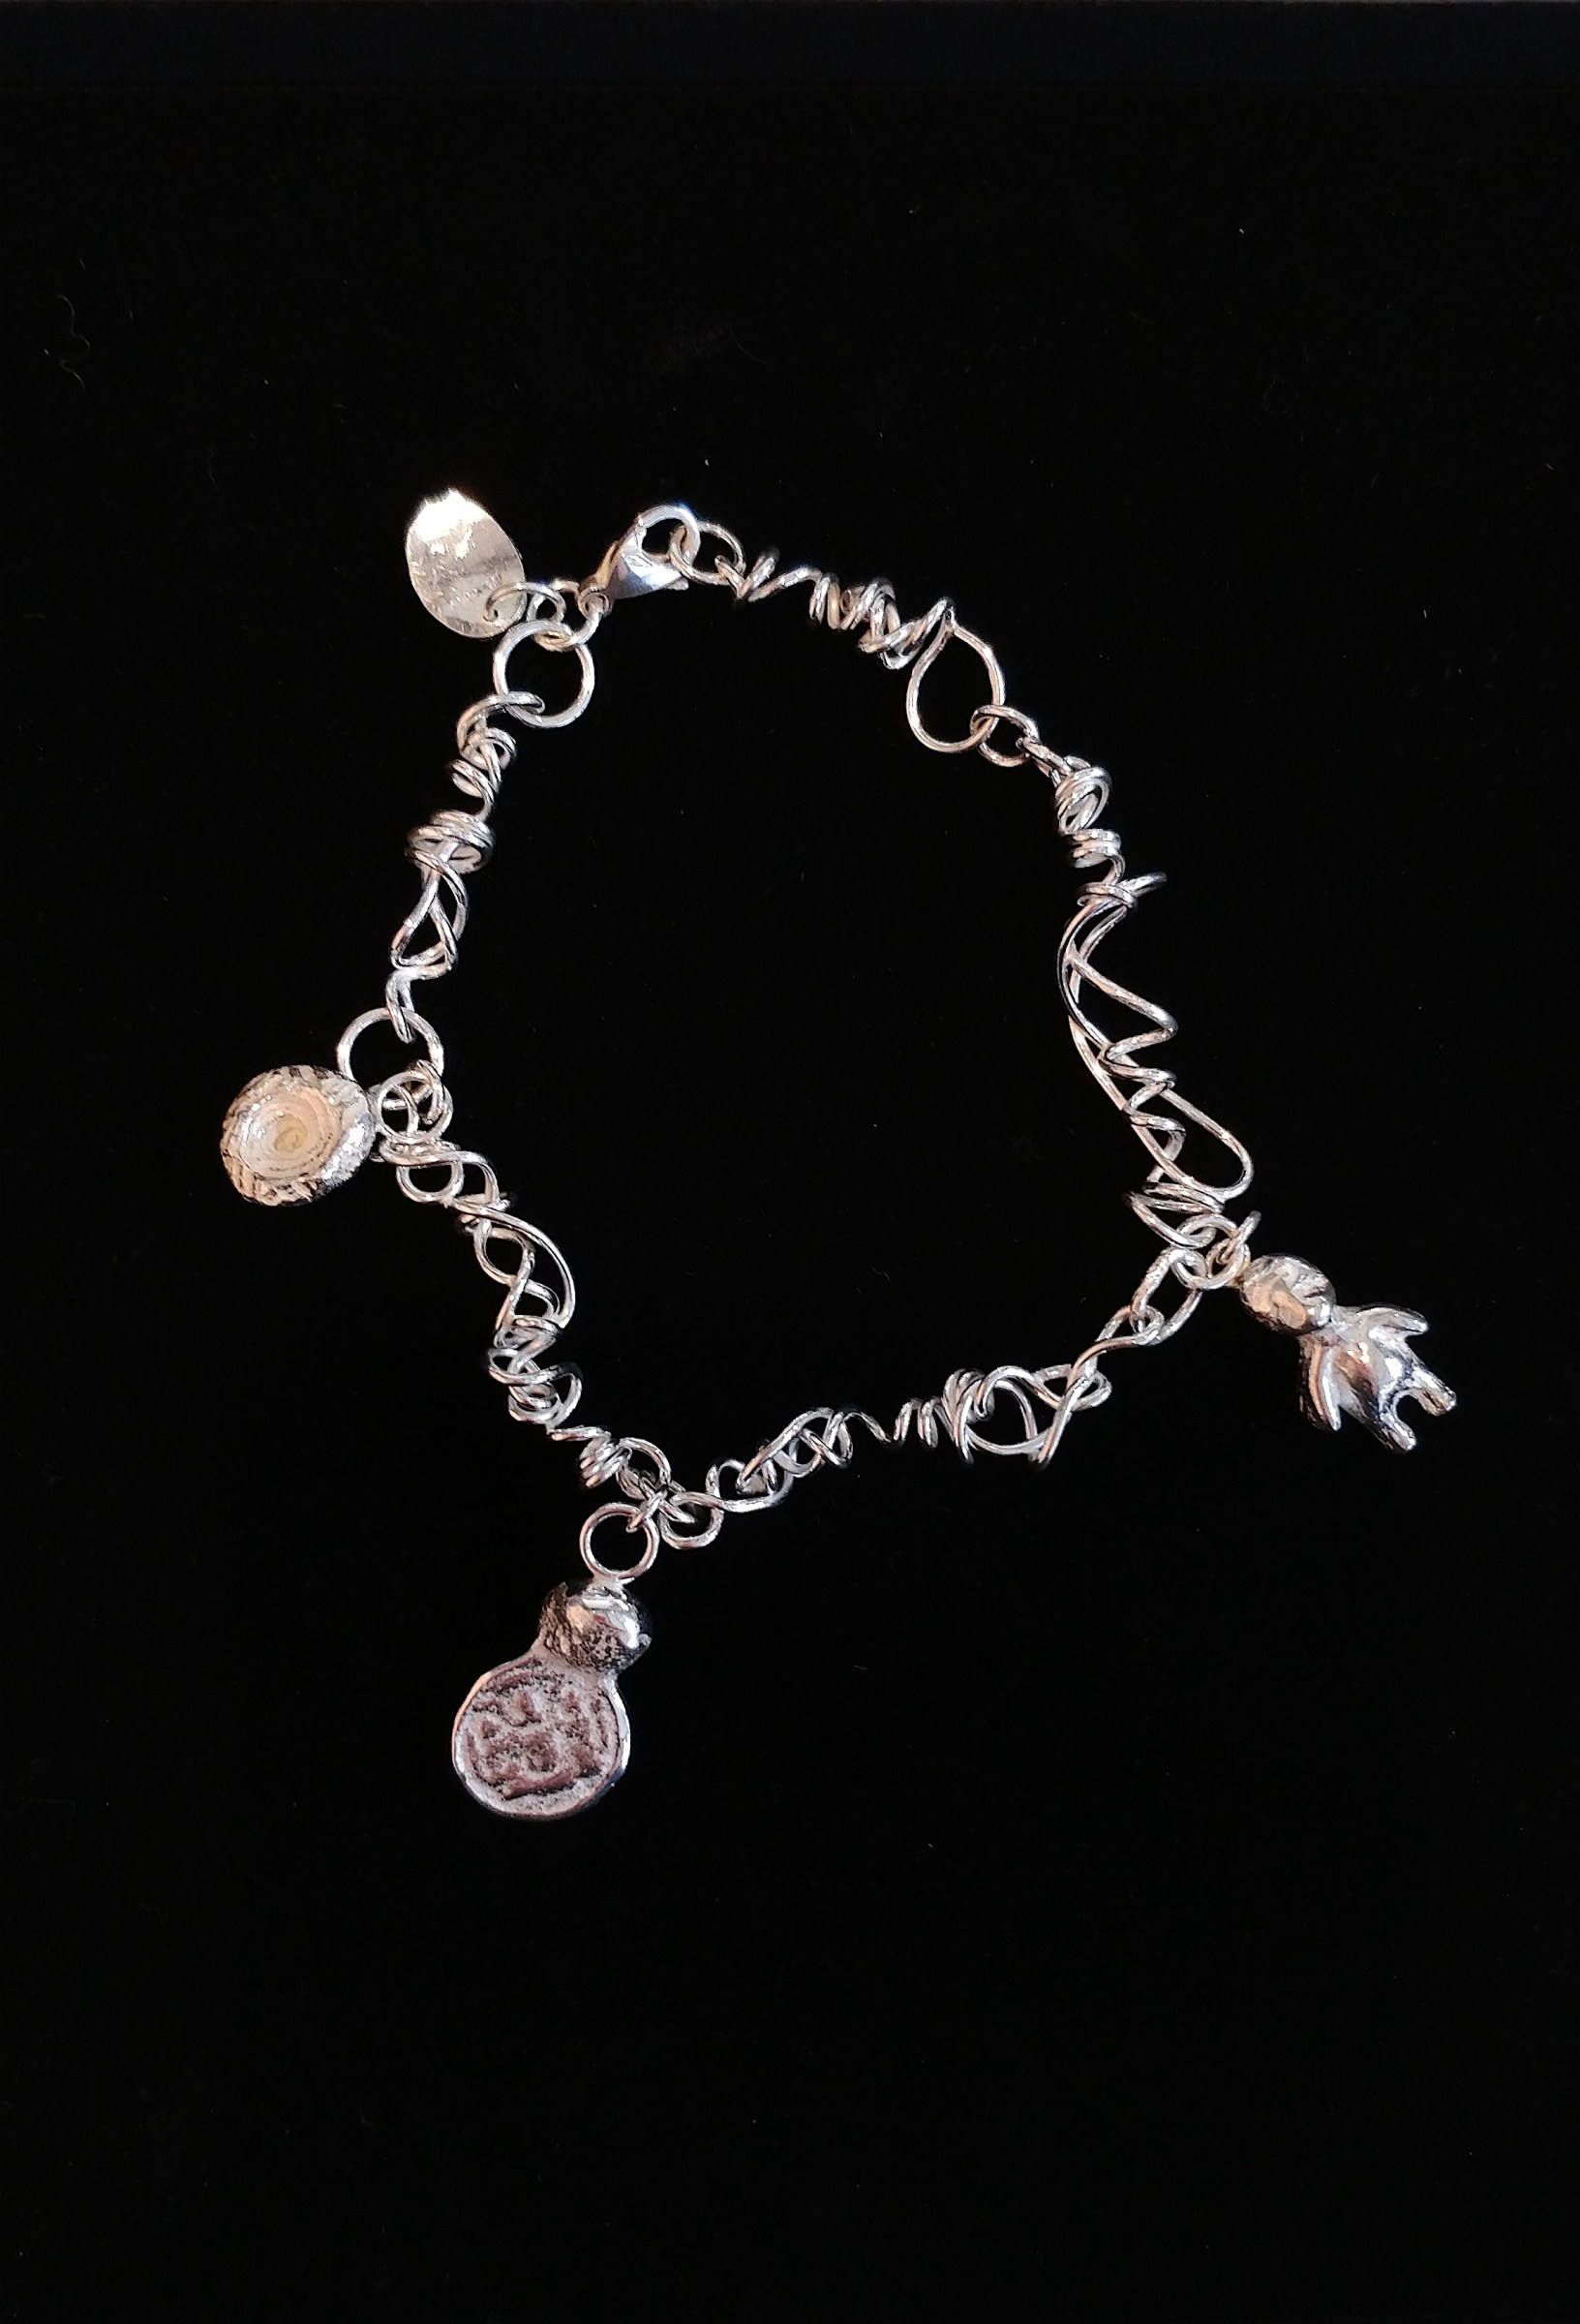 "<span class=""link fancybox-details-link""><a href=""/artists/183-lucy-coyne/works/5338-lucy-coyne-silver-charm-bracelet-with-cast-found-objects-2018/"">View Detail Page</a></span><div class=""artist""><strong>Lucy Coyne</strong></div> <div class=""title""><em>Silver Charm Bracelet with cast found Objects</em>, 2018</div> <div class=""medium"">multiple cast and roller pressed objects on silver chain</div><div class=""price"">£220.00</div><div class=""copyright_line"">OwnArt: £ 22 x 10 Months, 0% APR</div>"